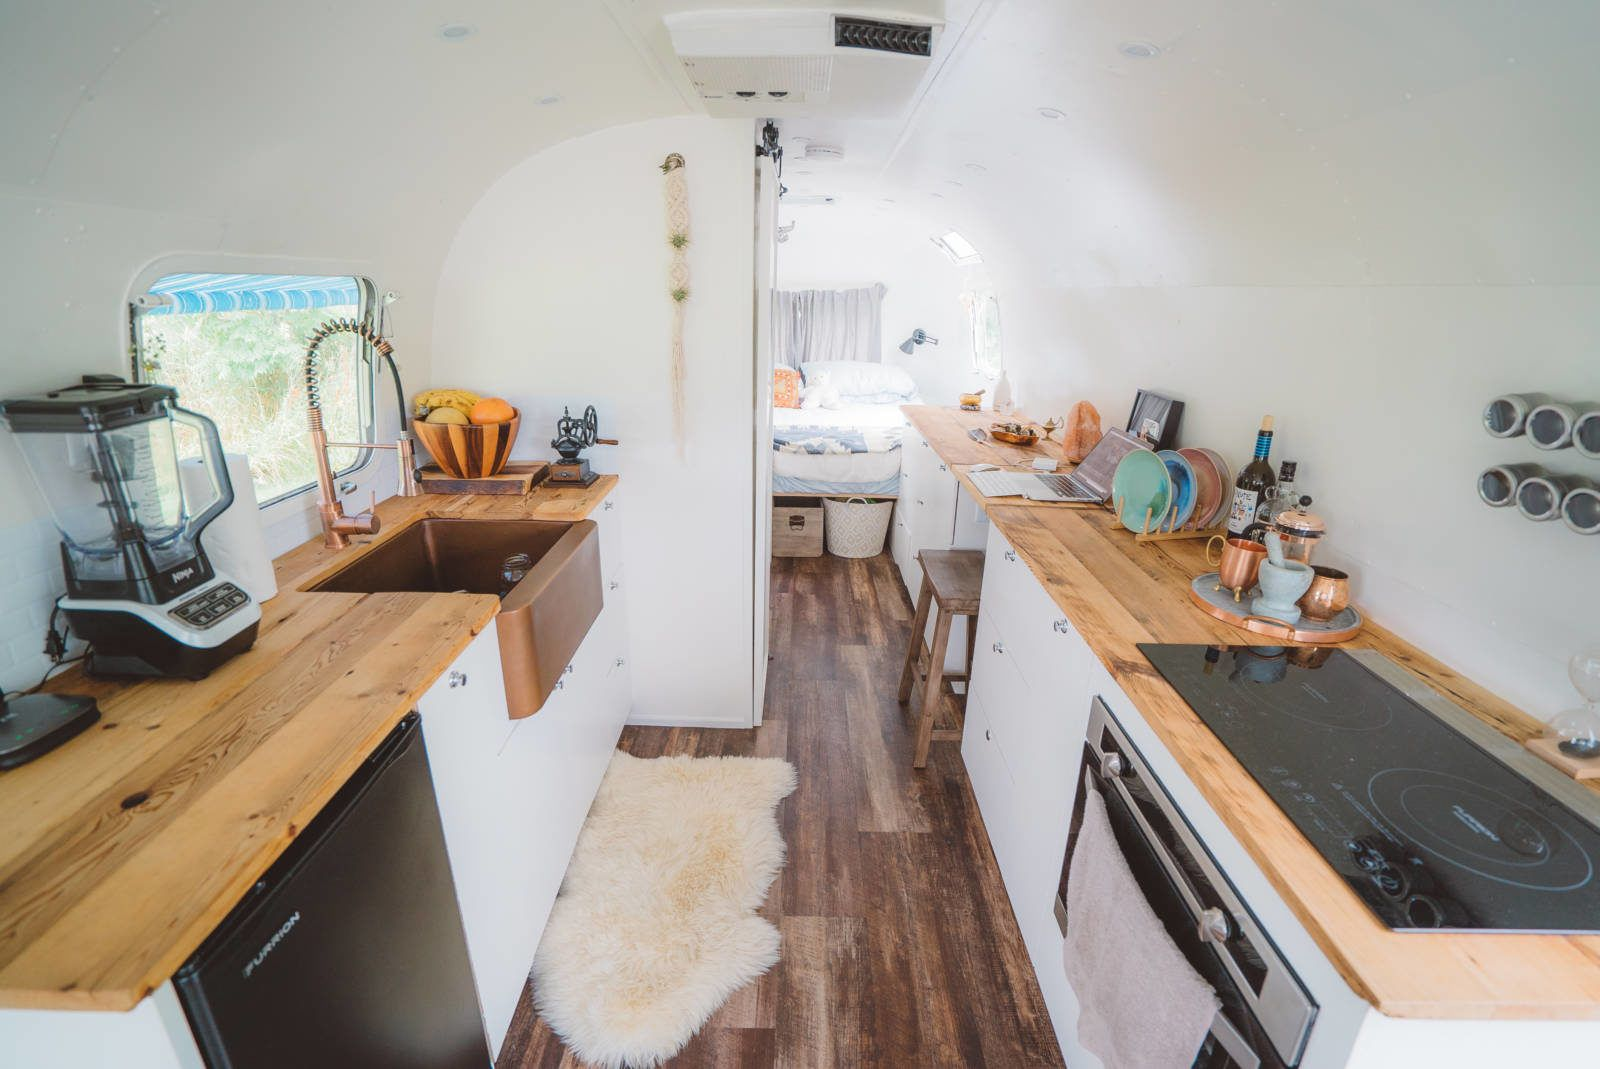 The Airstream Renovation is complete! Our journey renovating a vintage Airstream has been a wild one, but she's done. Meet Luna. Our luxury home on wheels.